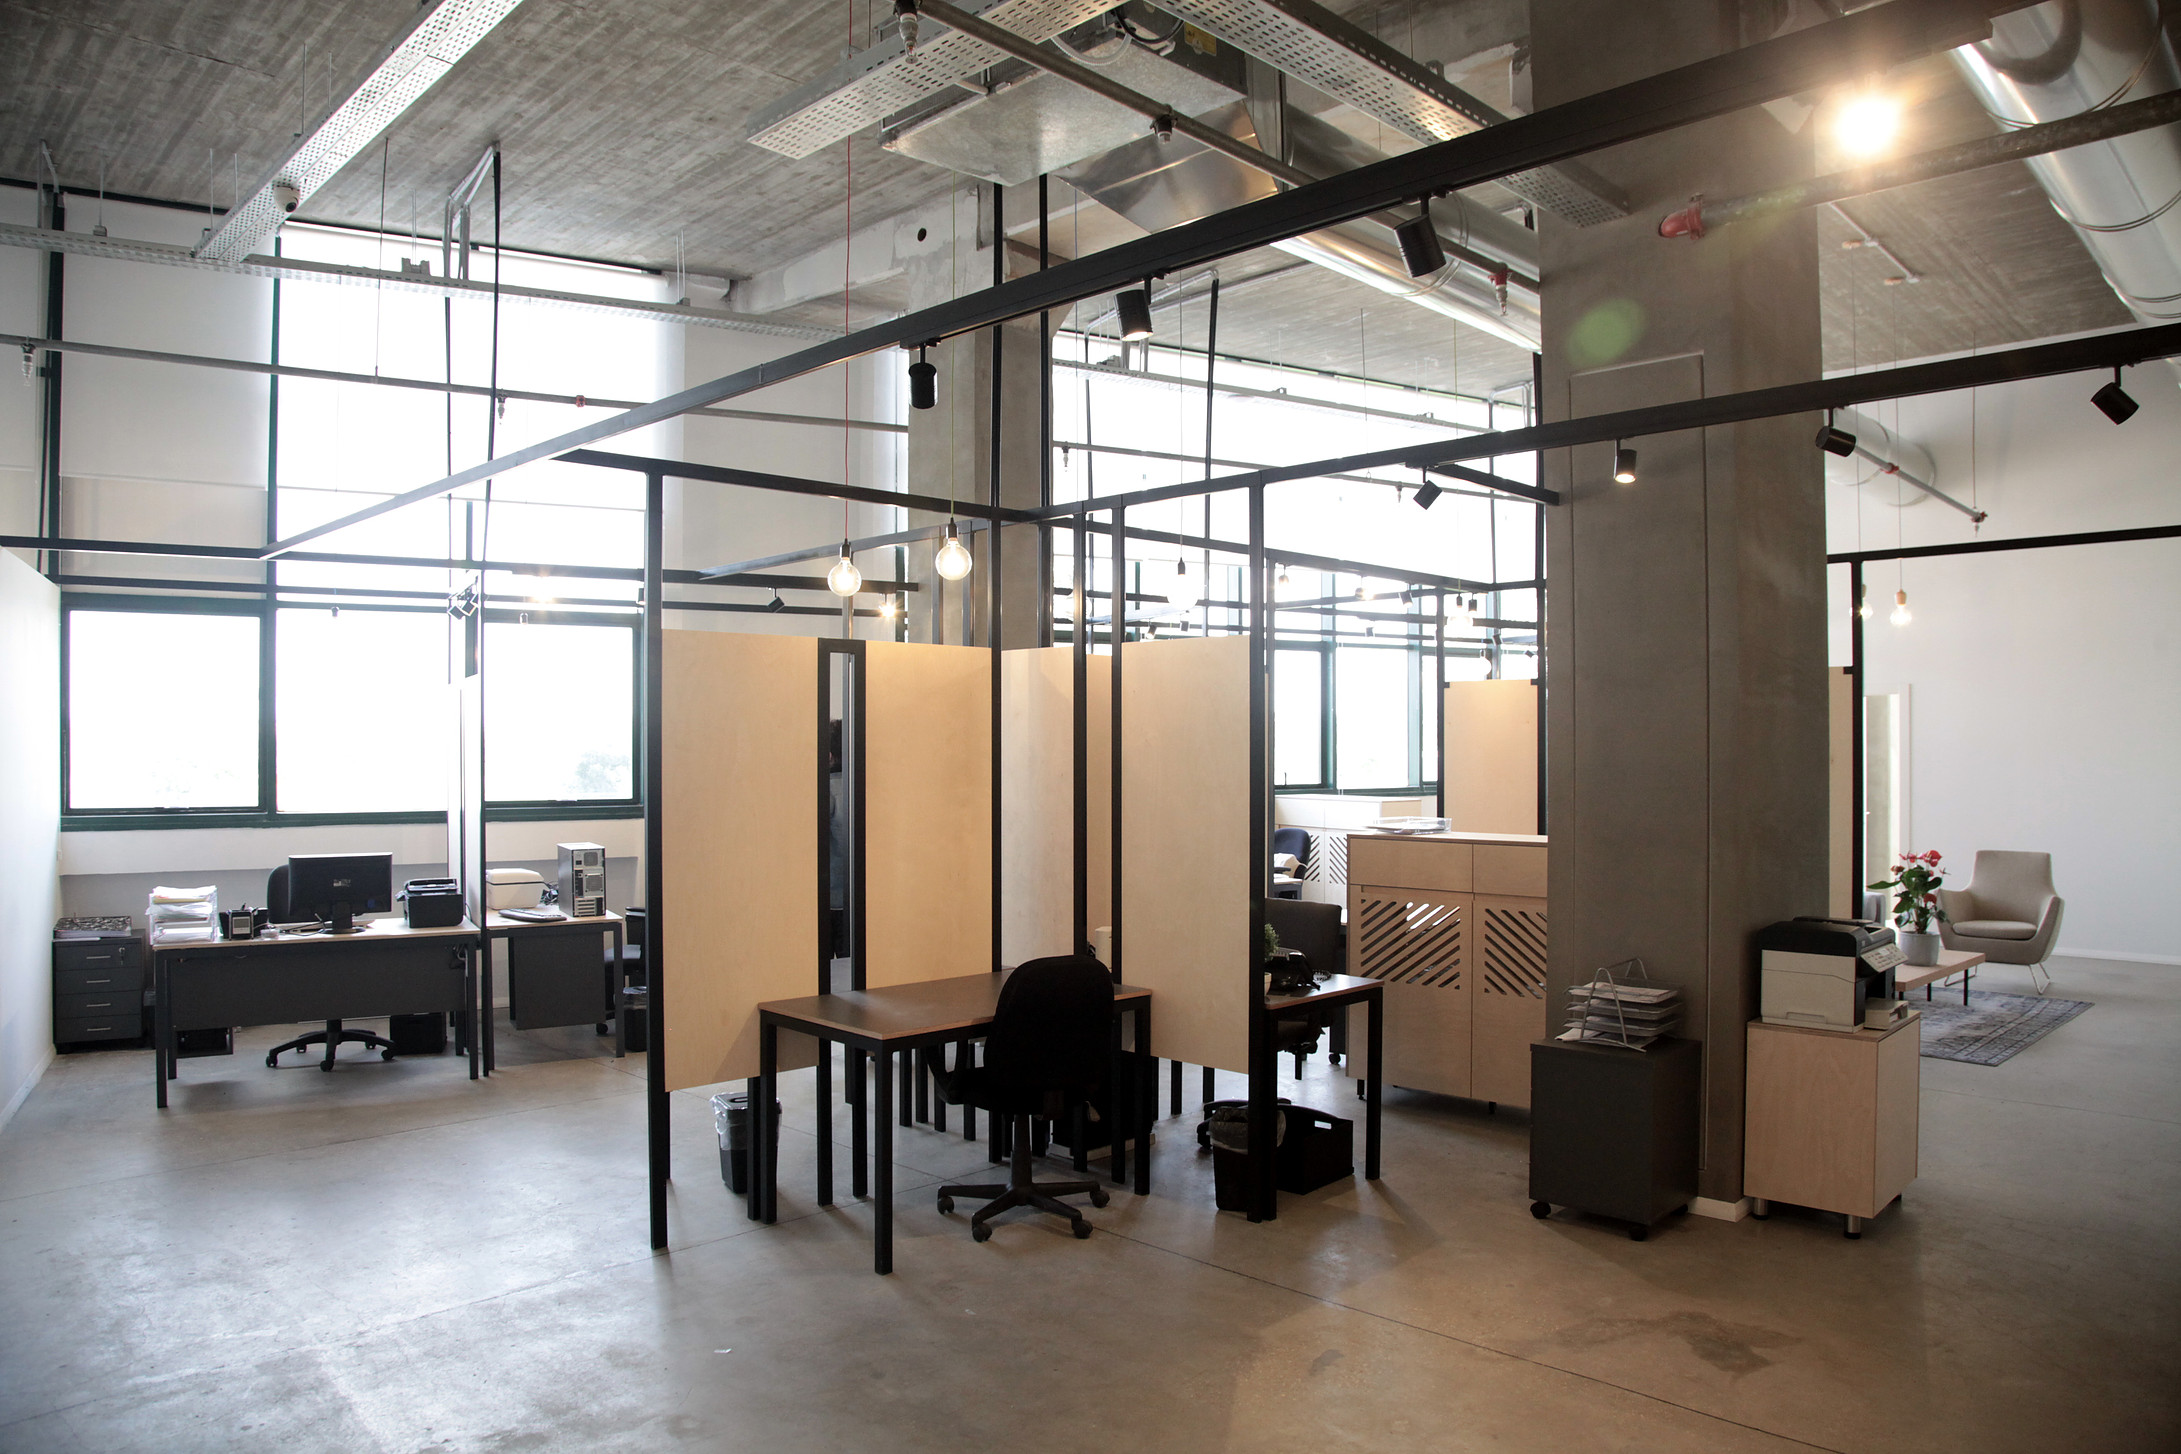 Office wood dividers and grid construction made of steel